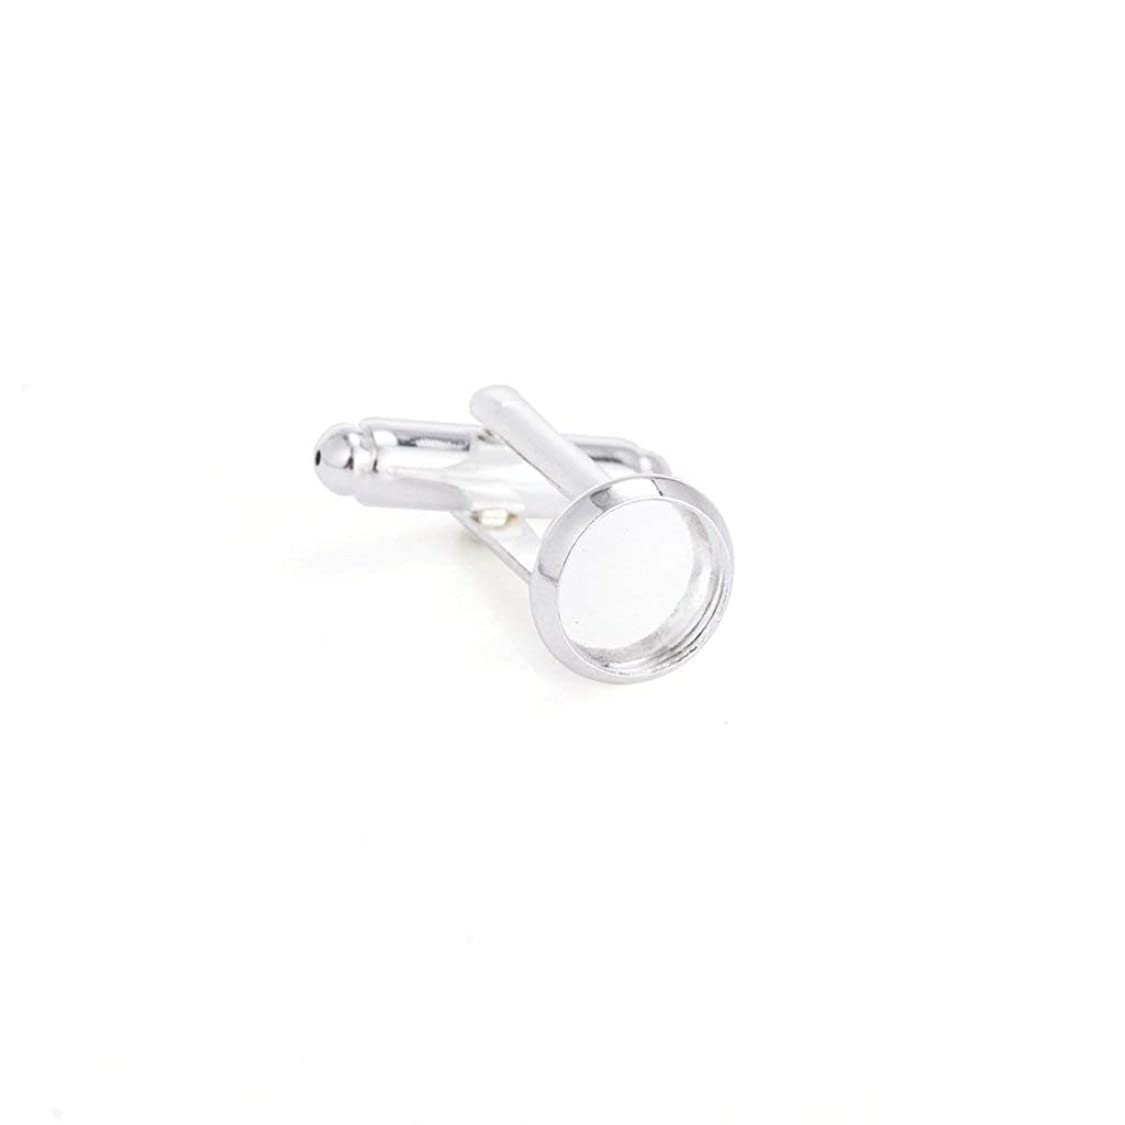 Yumei Jewelry 20 Pcs 8mm Bezel Round Shaped Silver Plated Copper Cuff Link Blanks Backs for Jewelry Findings pj22067268966360